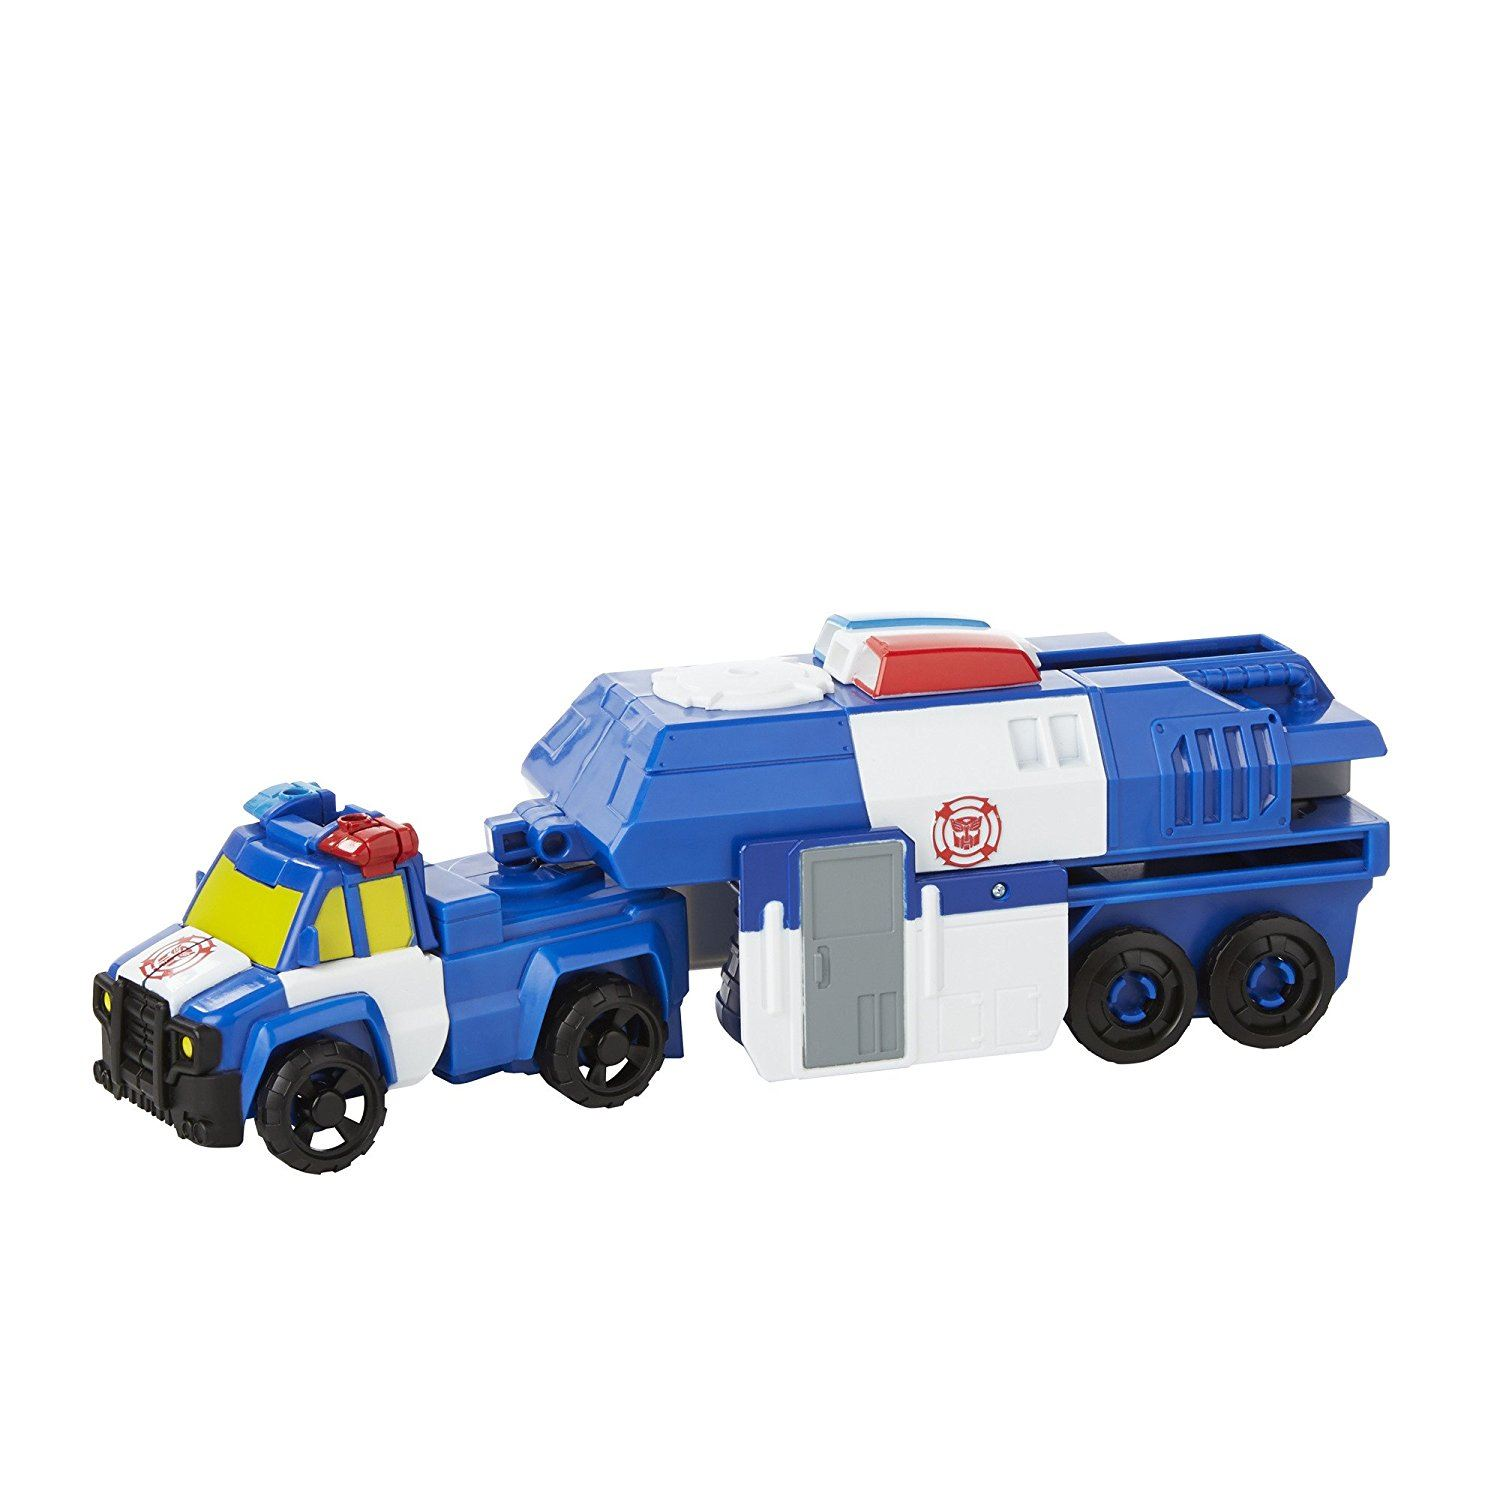 Transformers Rescue Bots Capture Claw Chase crochet /& échelle Heatwave